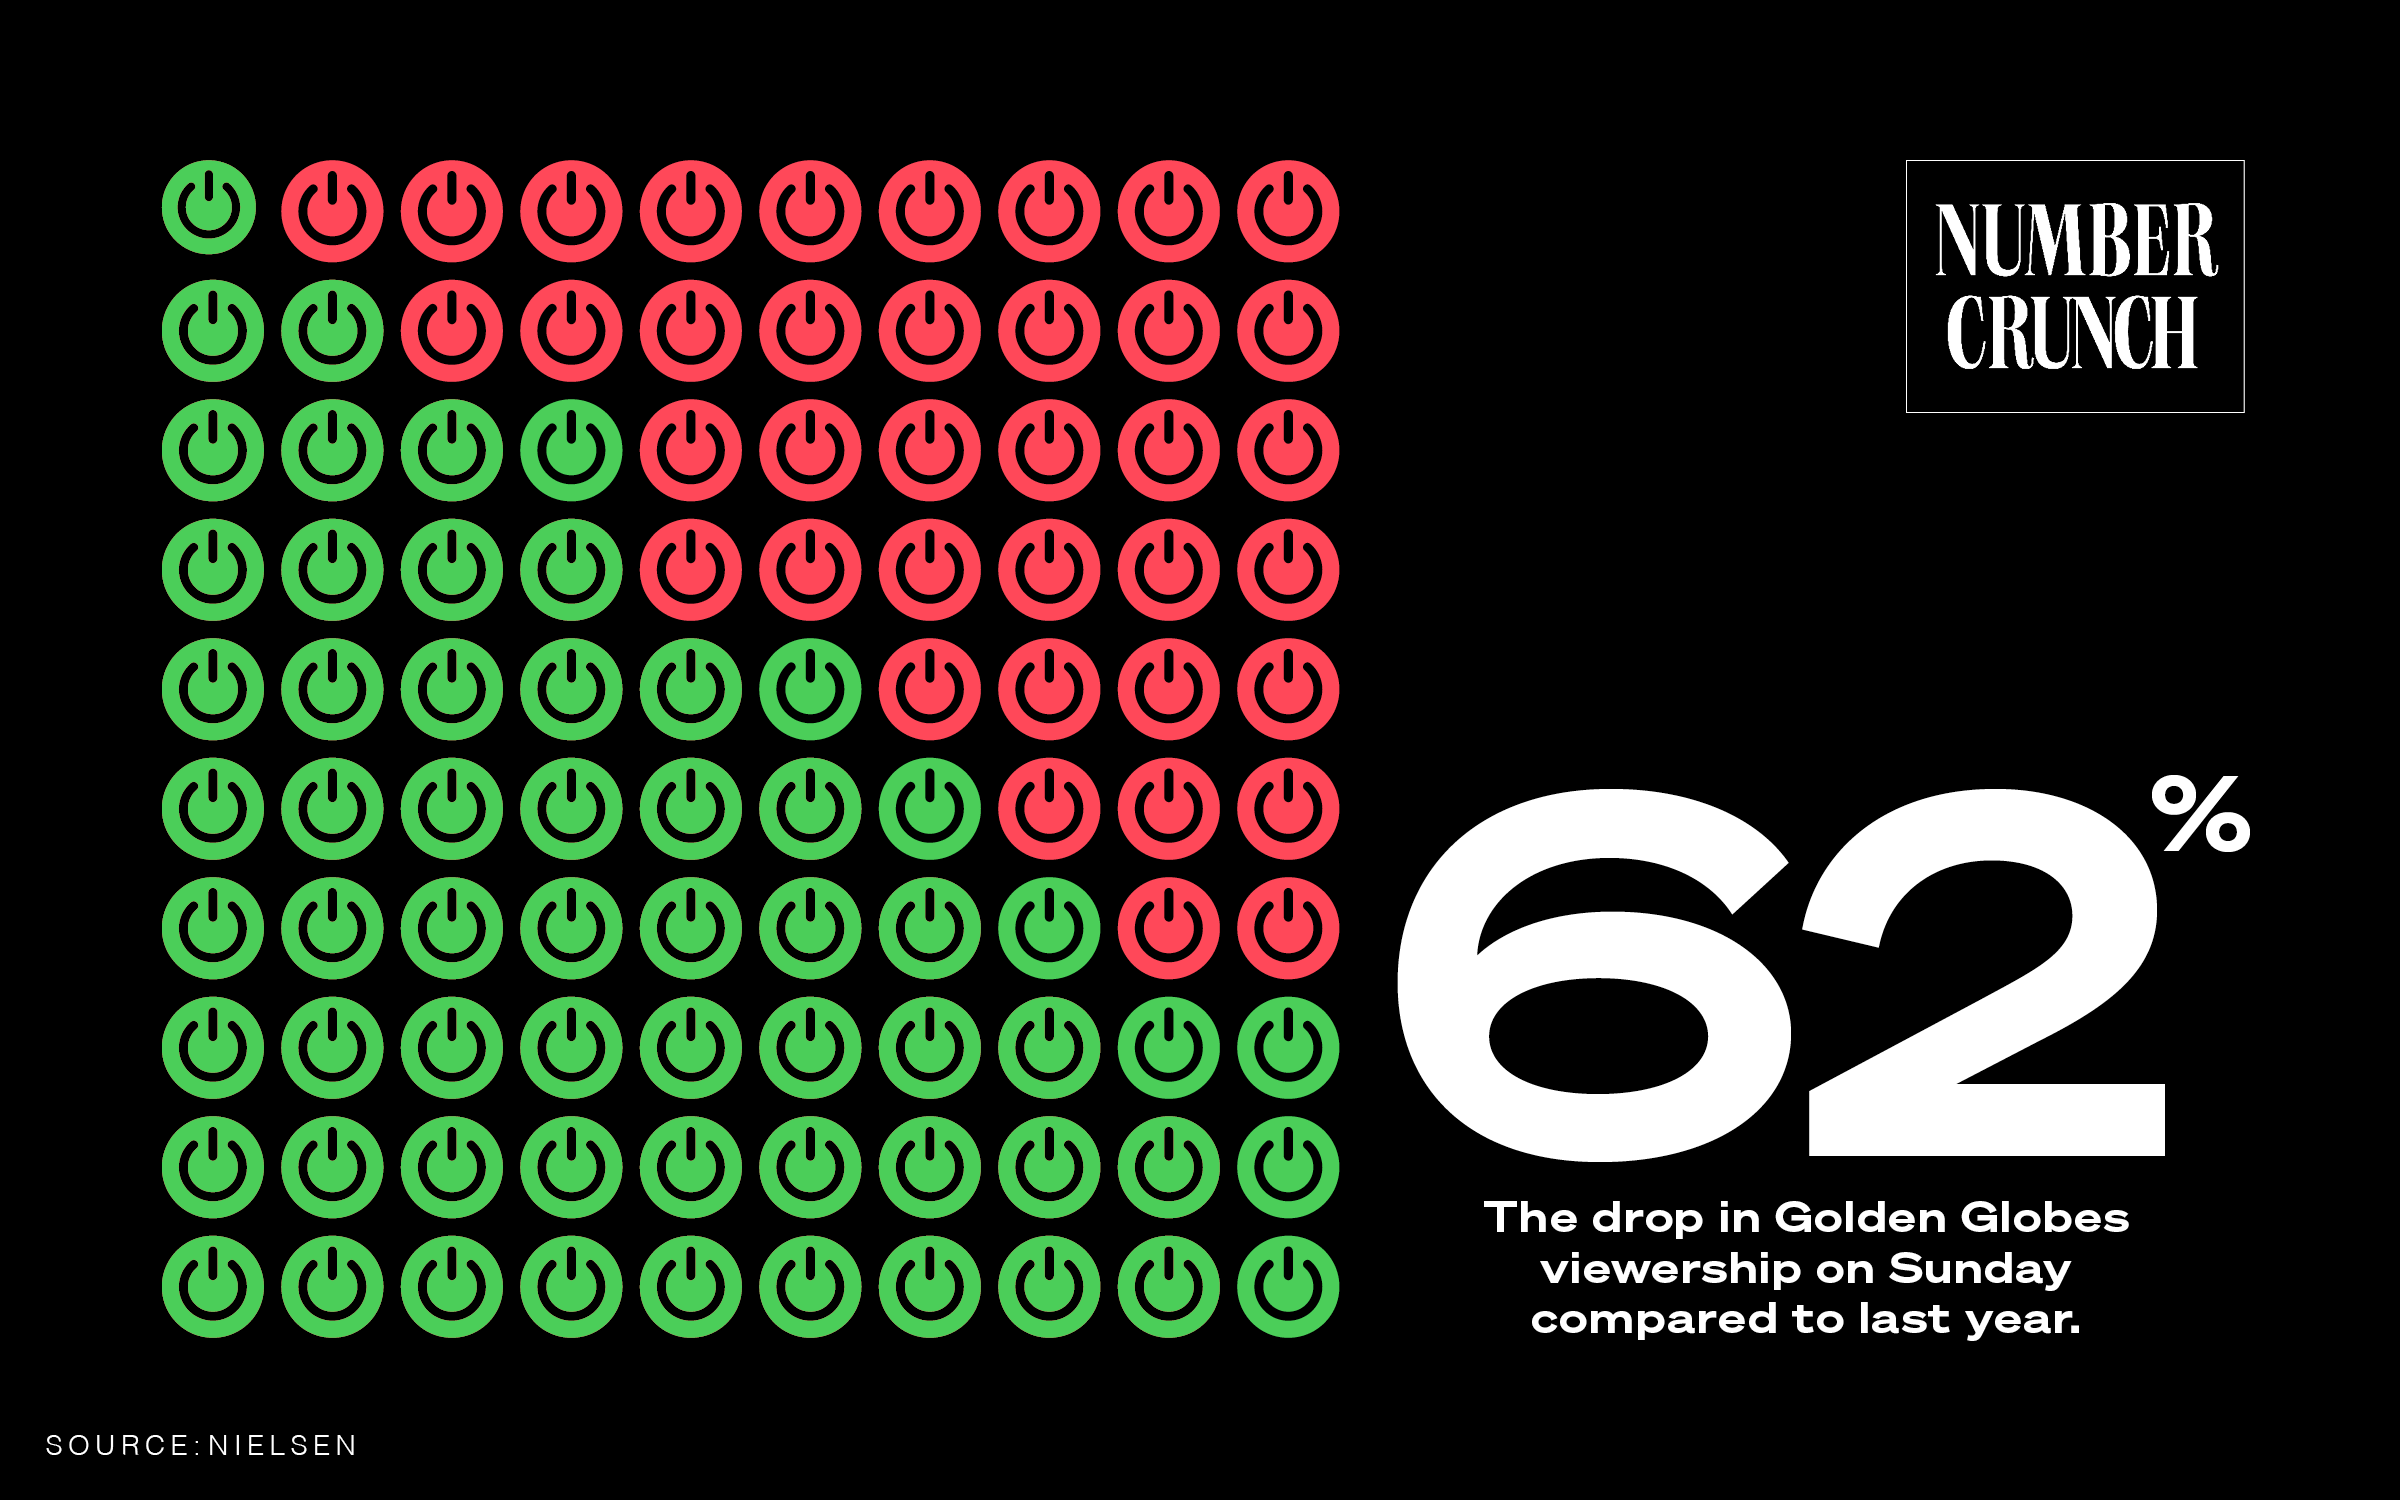 "The Number Crunch logo next to an infographic showing 62 out of 100 power button symbols as green. There is text next to the infographic which states ""62%: The drop in Golden Globes viewership on Sunday compared to last year. Source: Nielsen"""